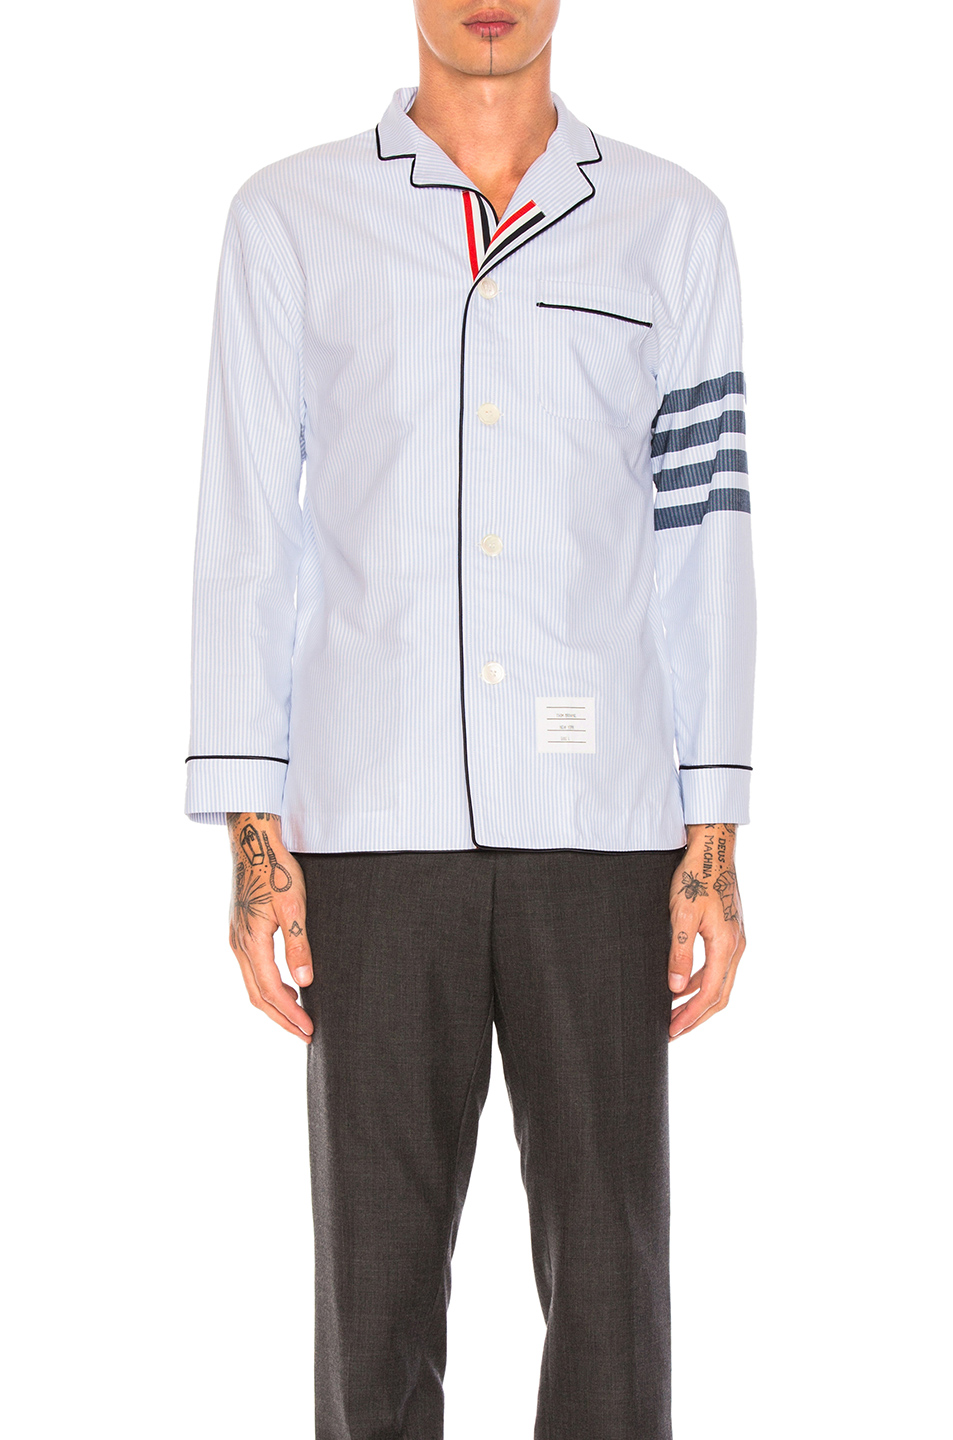 Thom Browne Oxford Pajama Shirt in Blue,Stripes